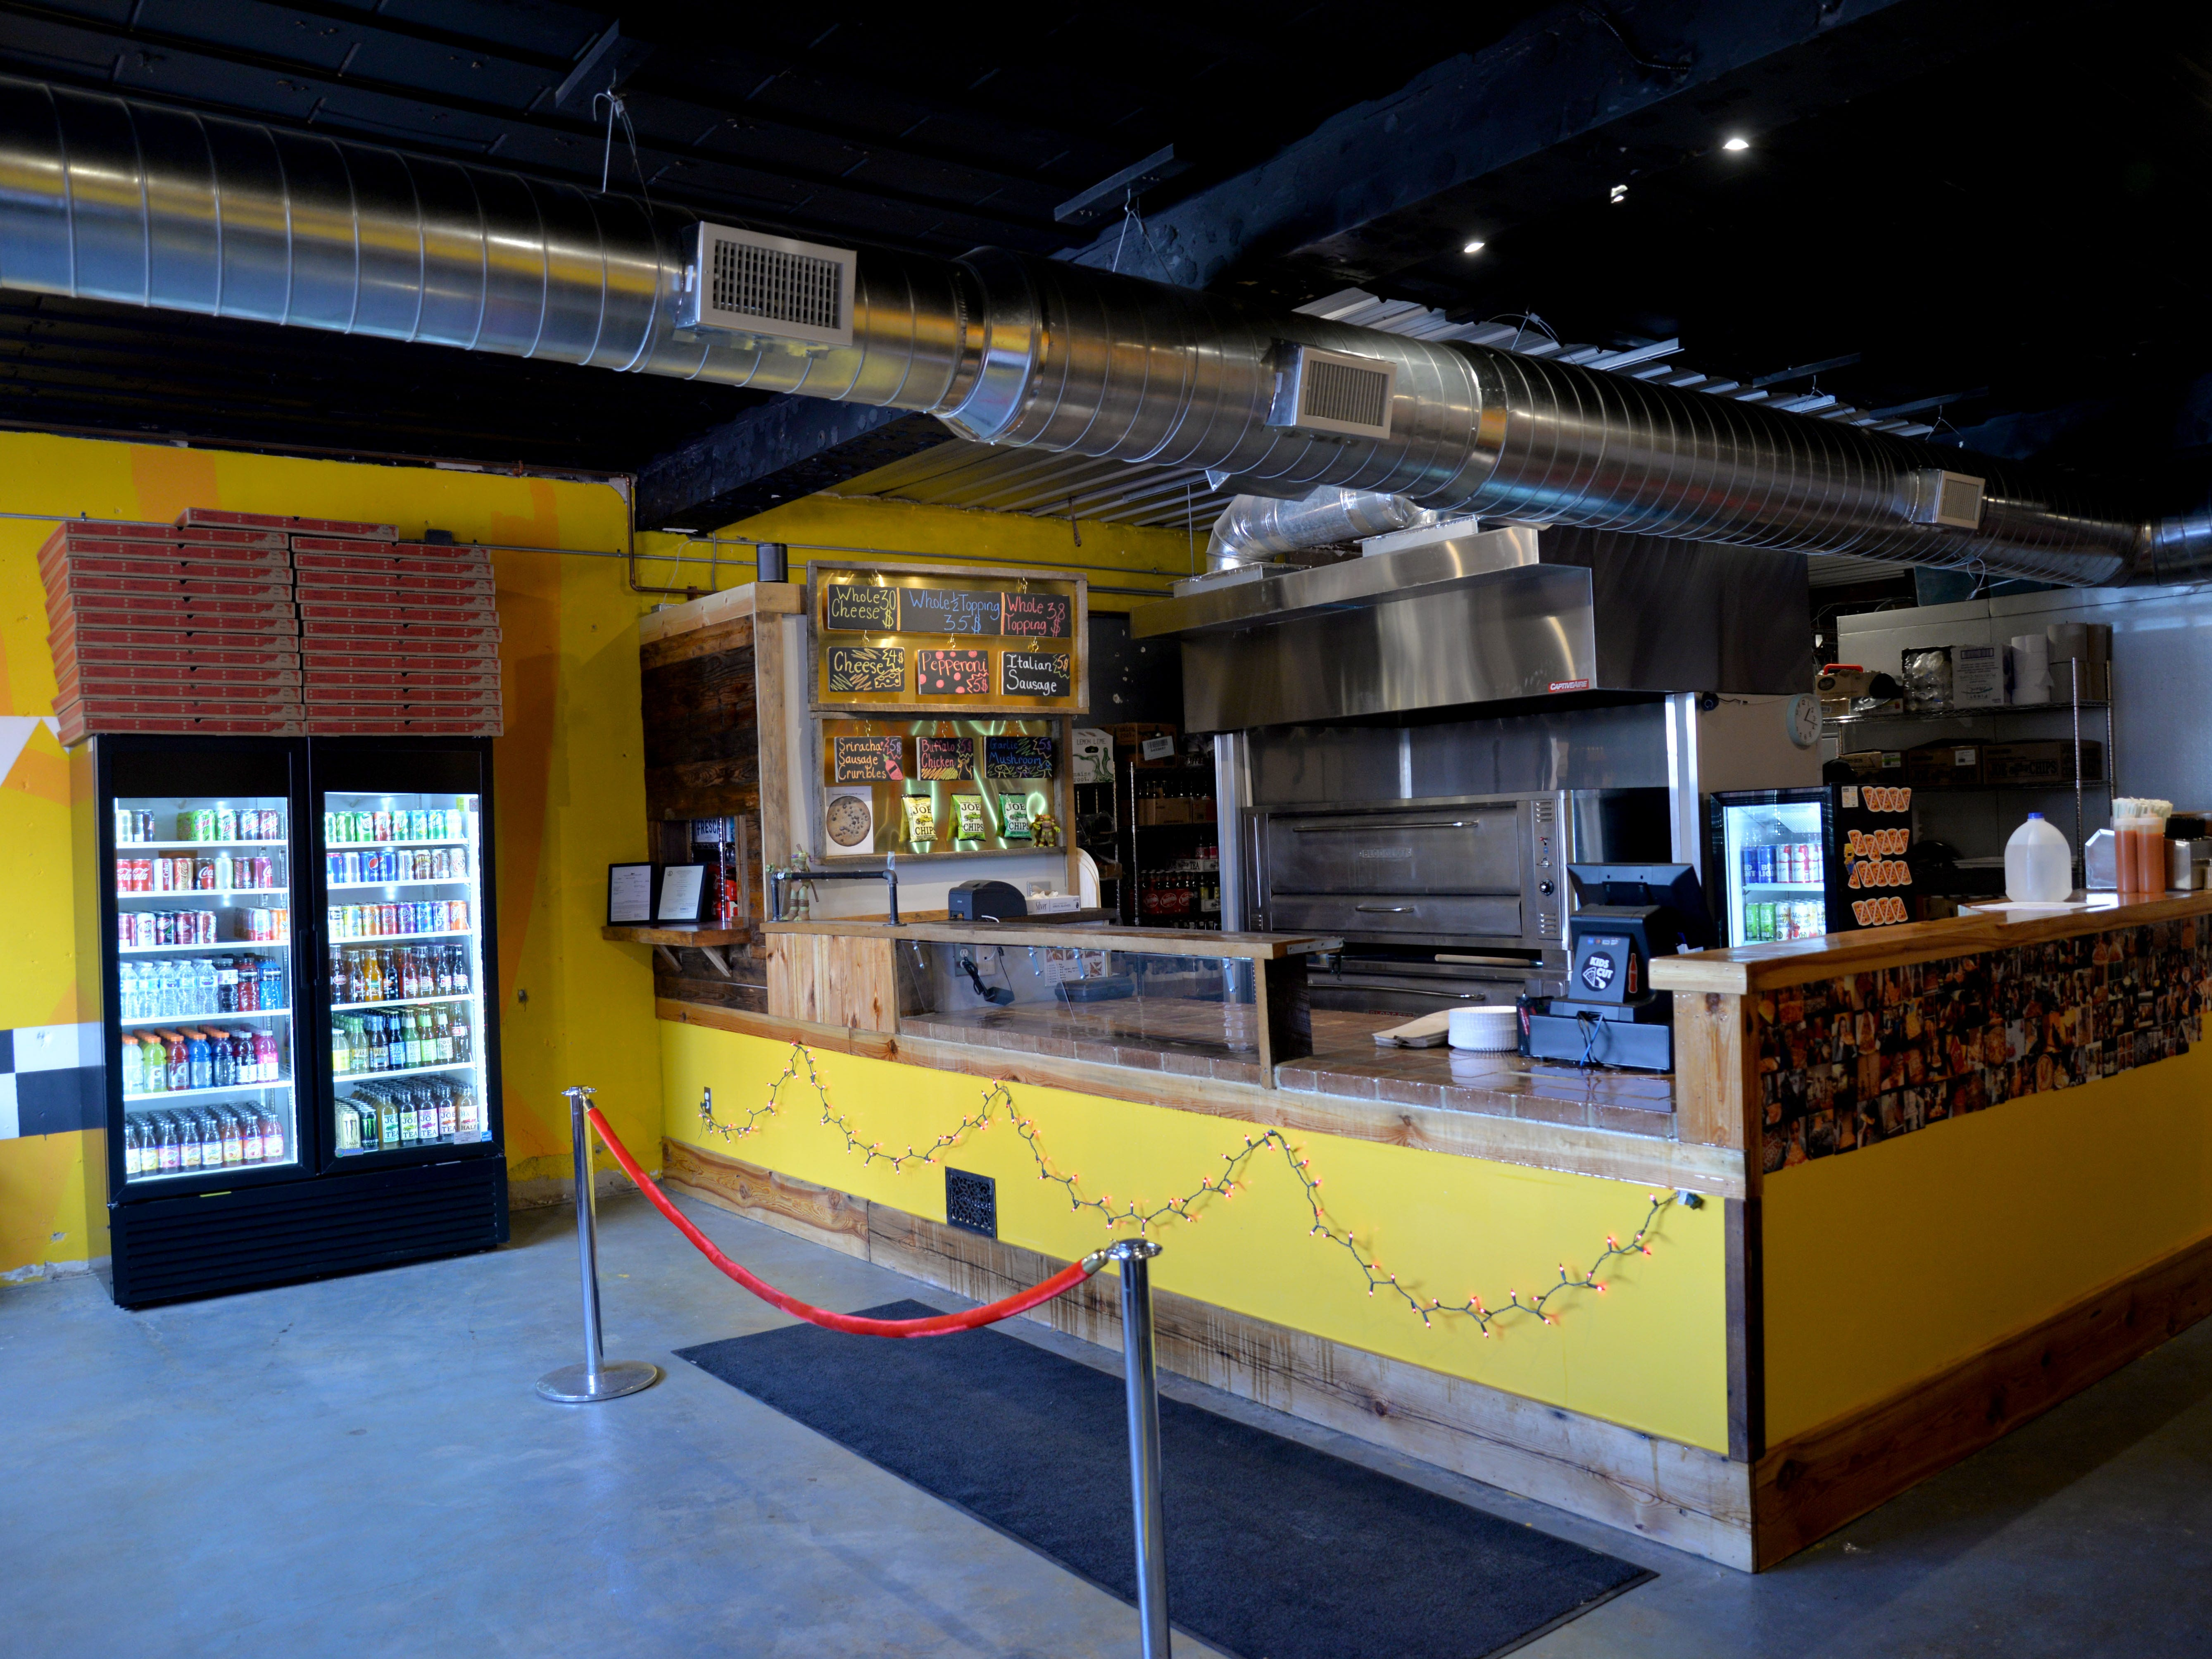 Benny Stivale's, a new Benny's Pizza restaurant, will open on Waynesboro's Main Street in its downtown. The pizza restaurant, which has 19 different locations owned by several partners, serves up 28-inch pizzas and pizza by the slice.